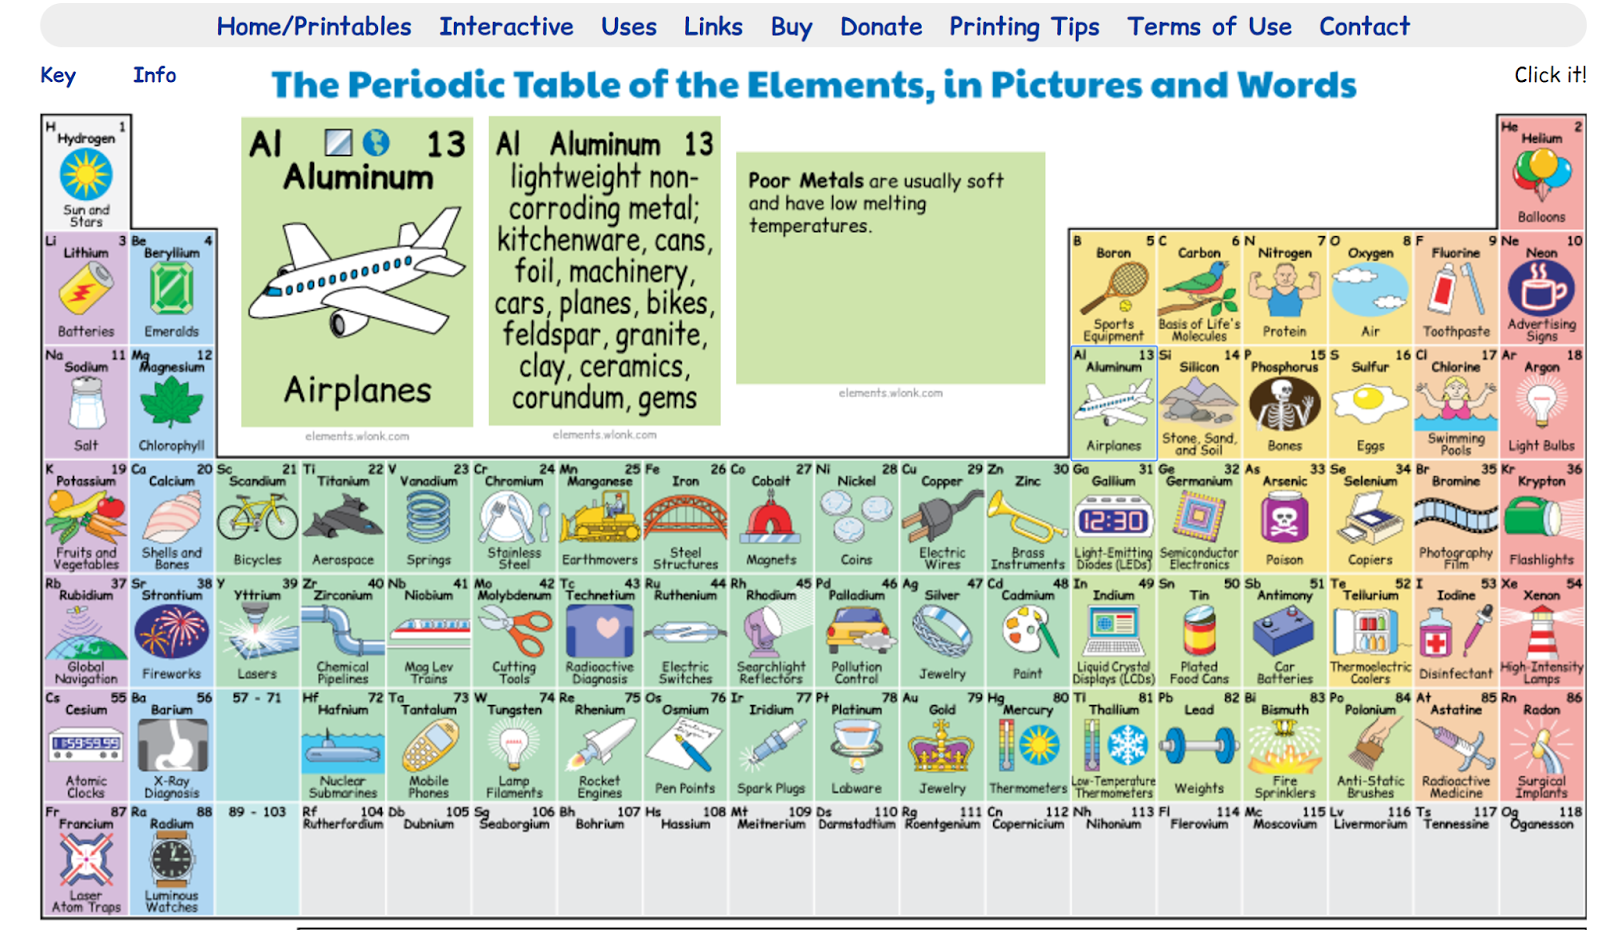 Free technology for teachers the periodic table in pictures and words the periodic table of elements in pictures and words could be a great resource for middle school science classrooms it also provides a nice model for an gamestrikefo Images